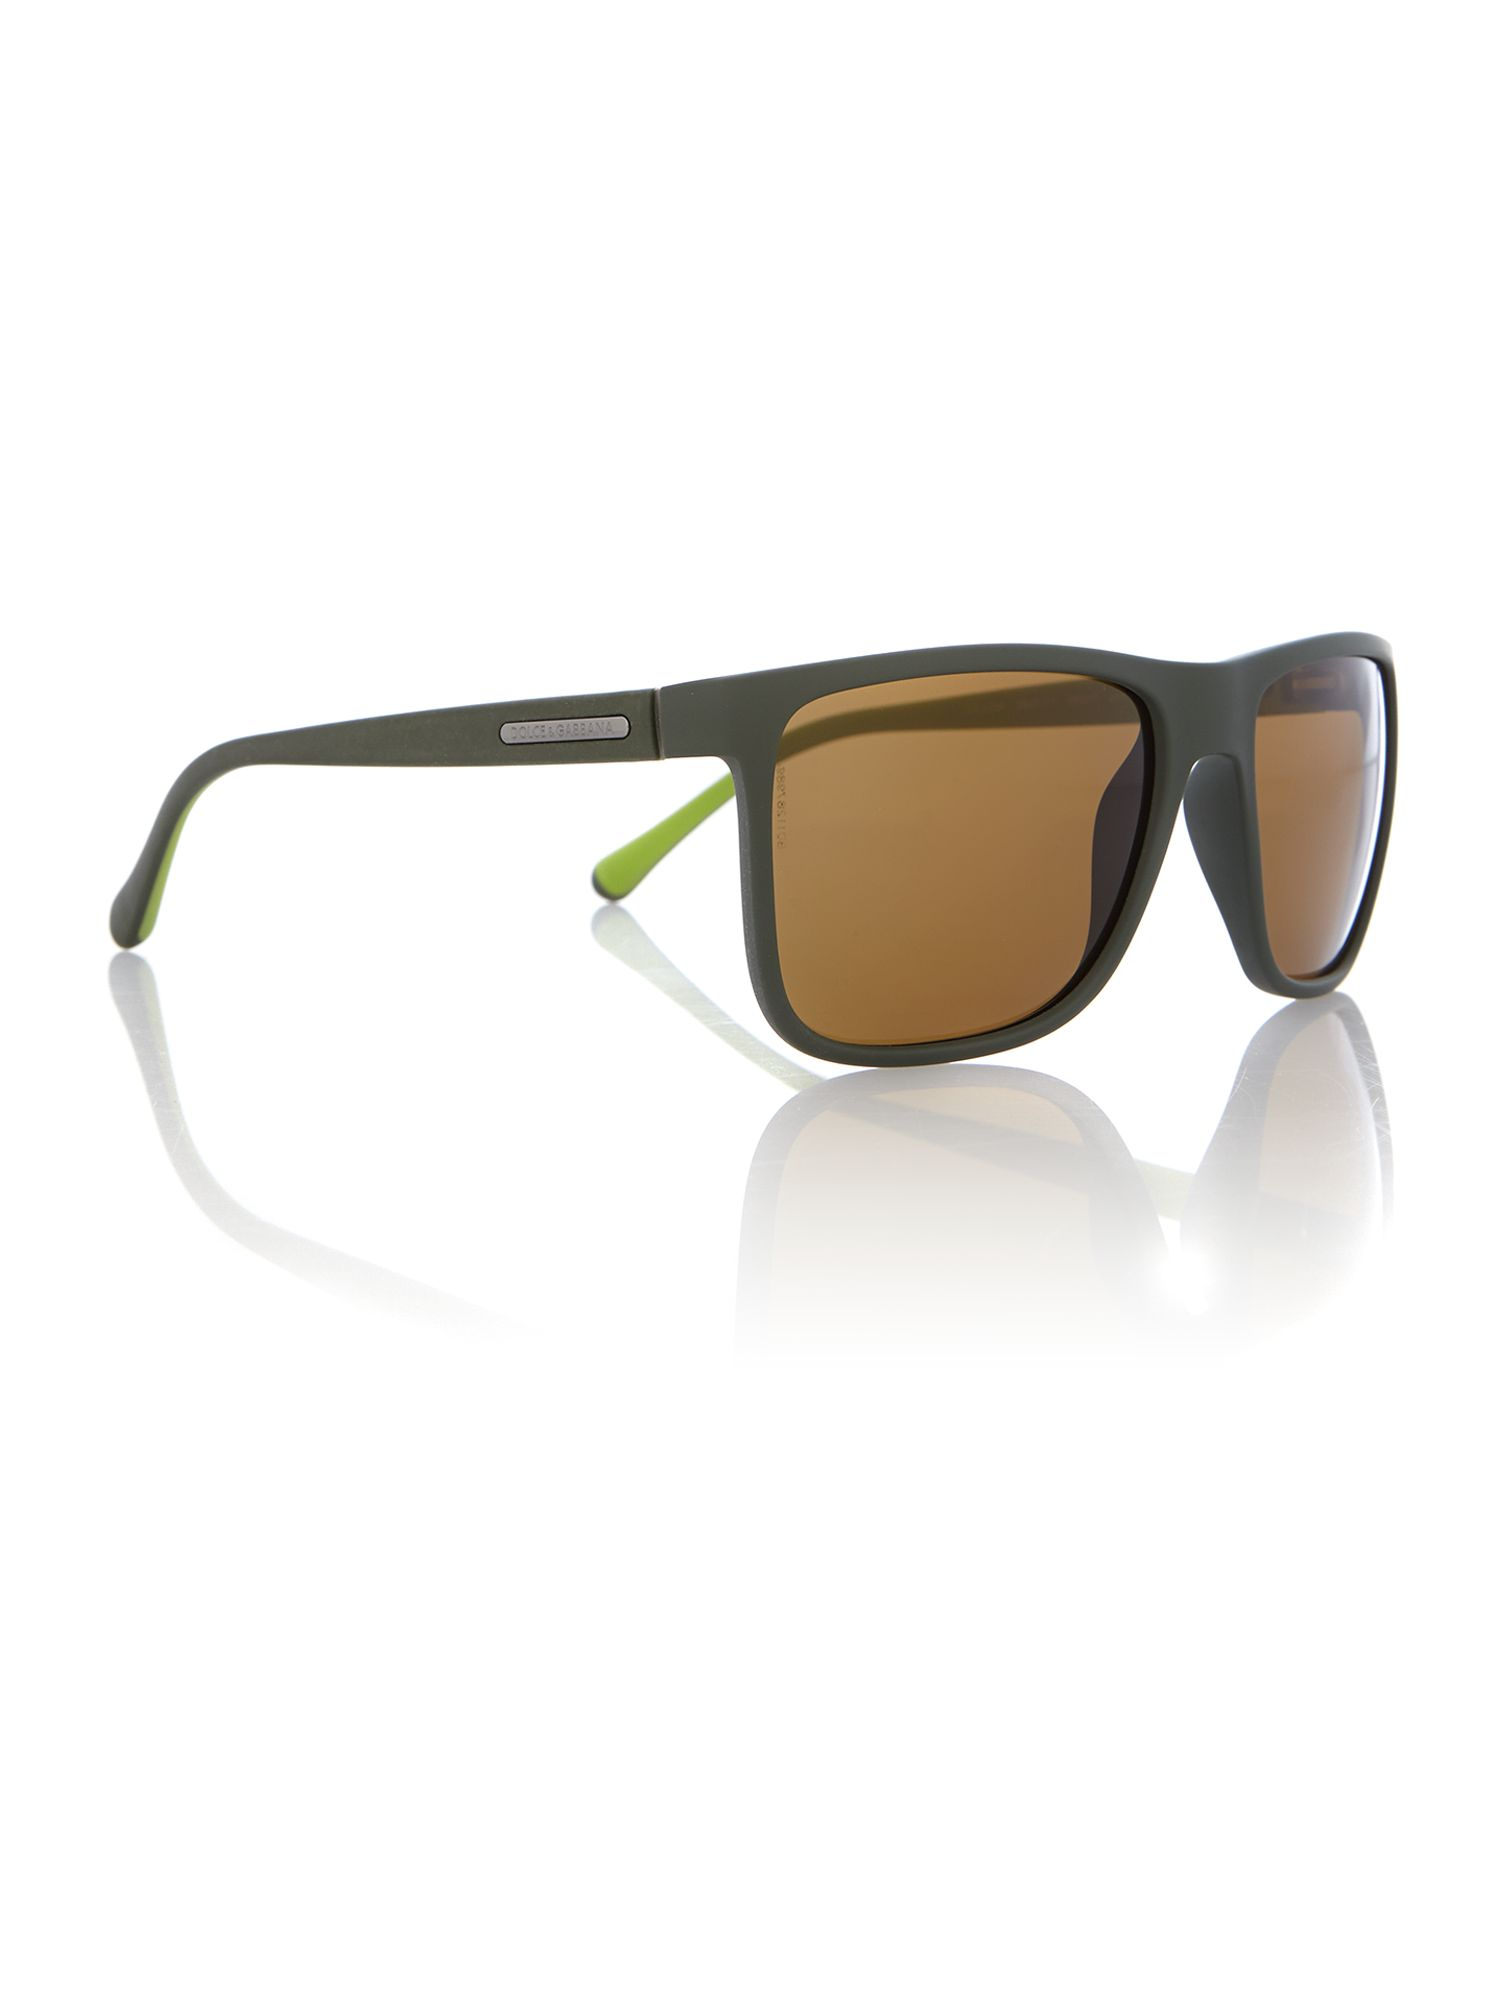 Dg6086 men`s square sunglasses